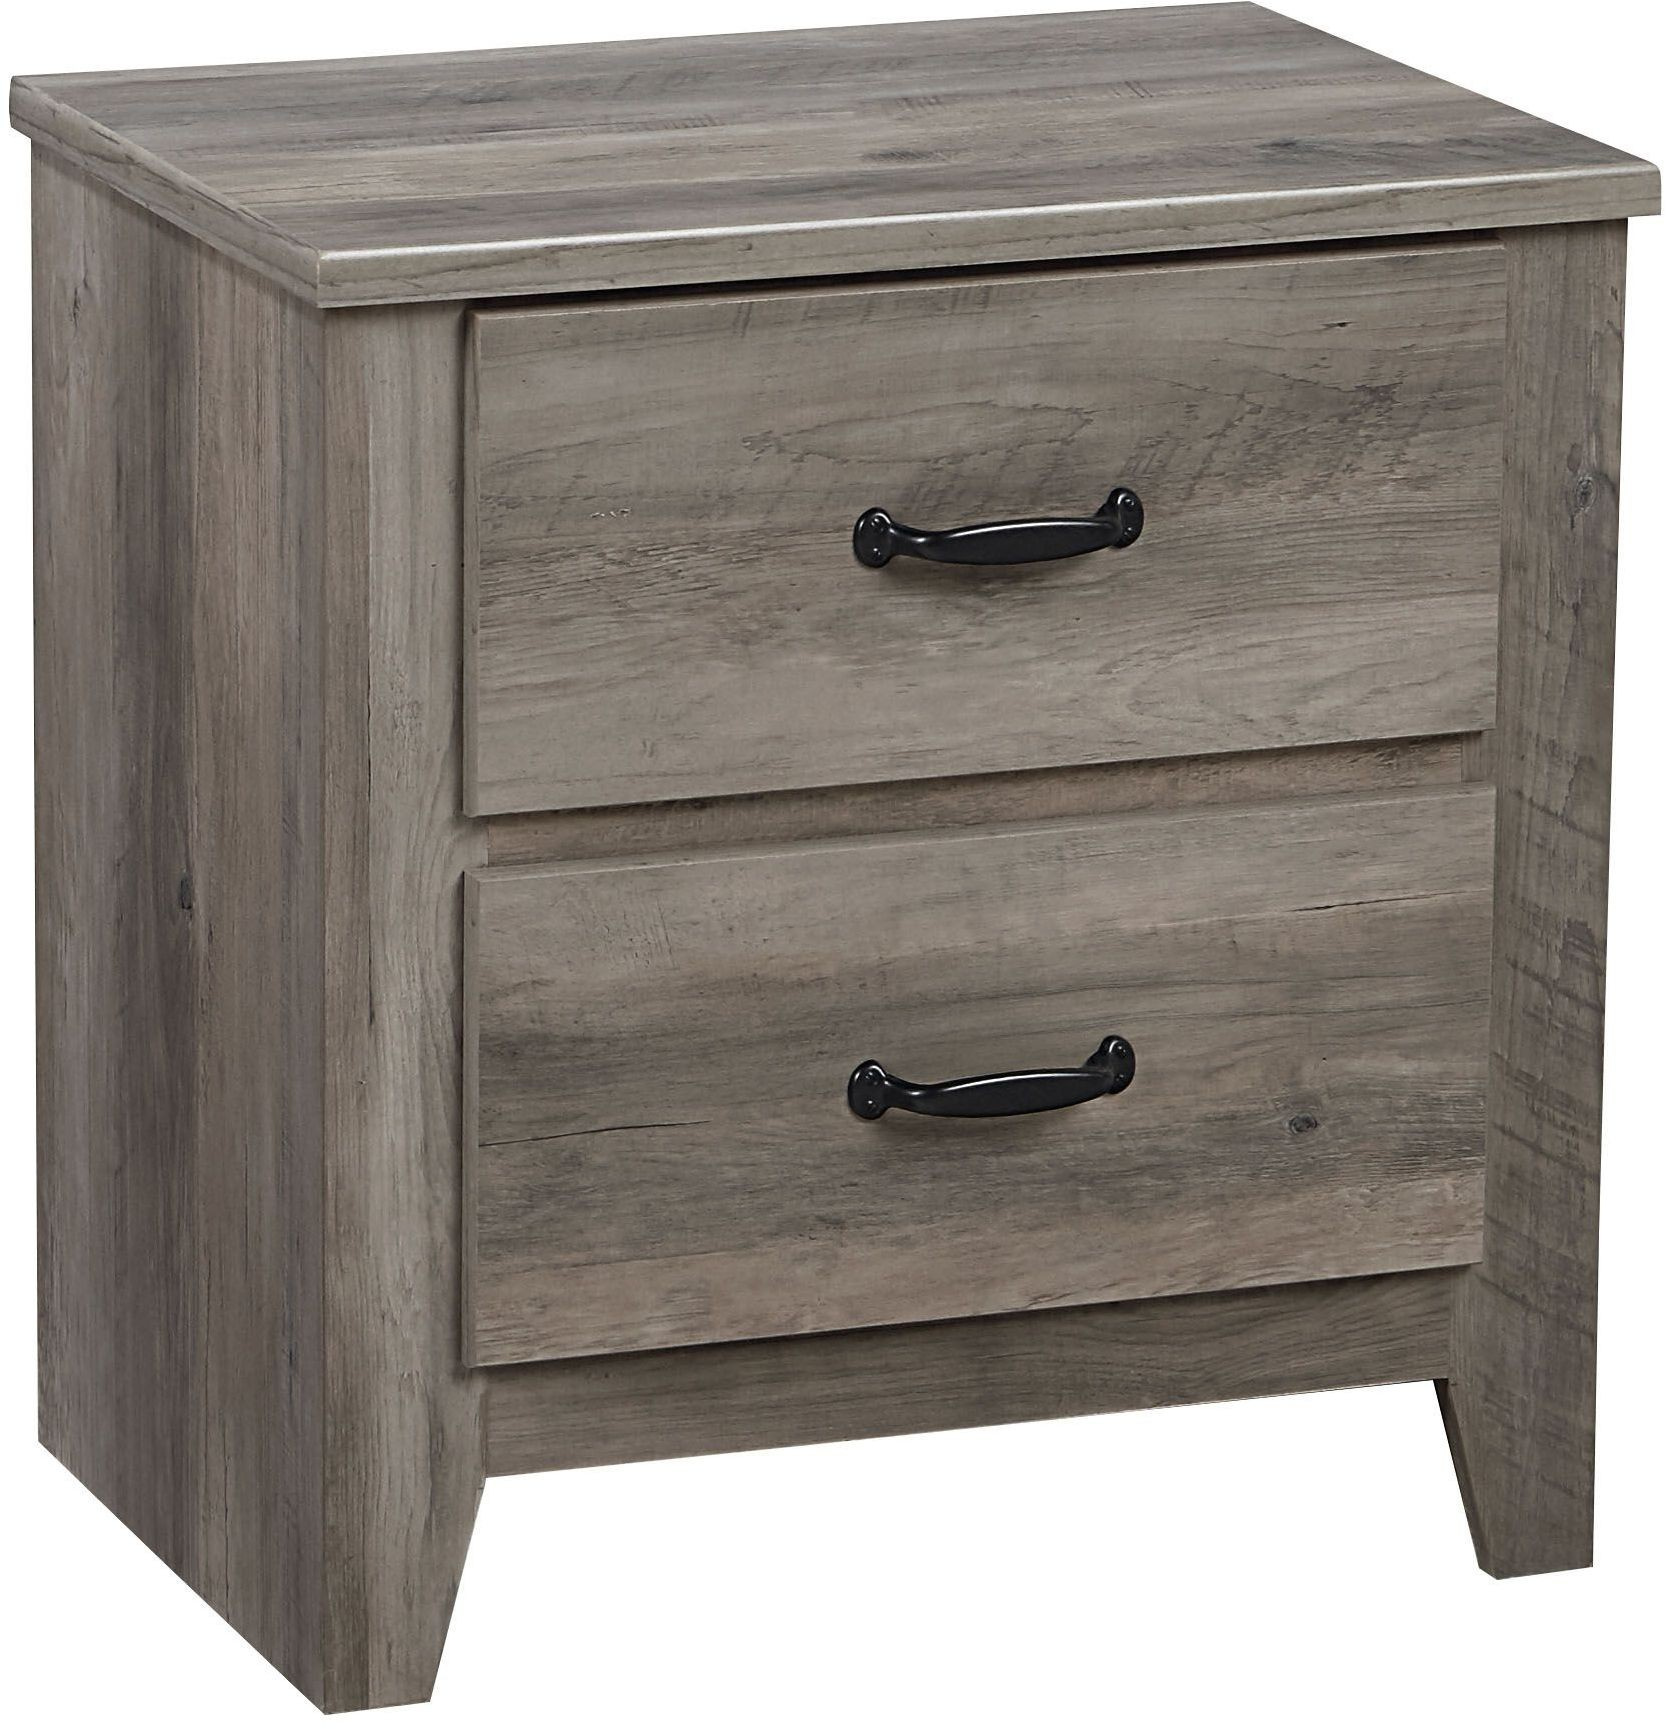 Barnett distressed pine 2 drawer nightstand